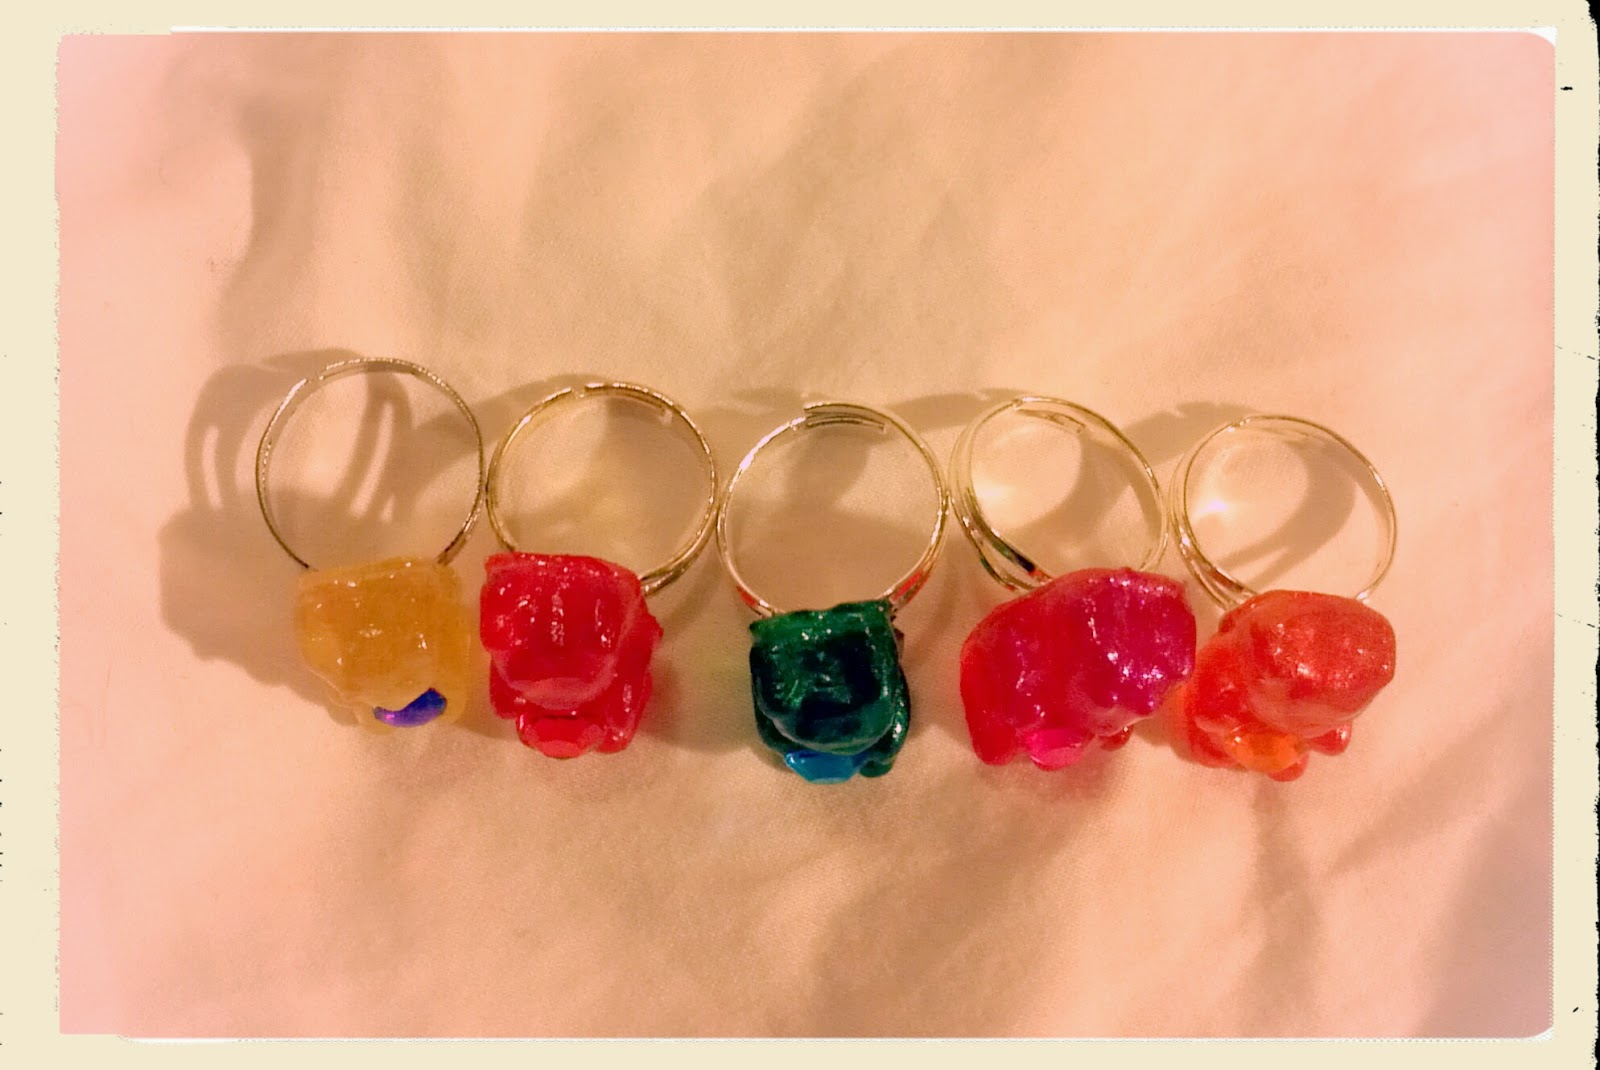 Top view of gummy bear rings